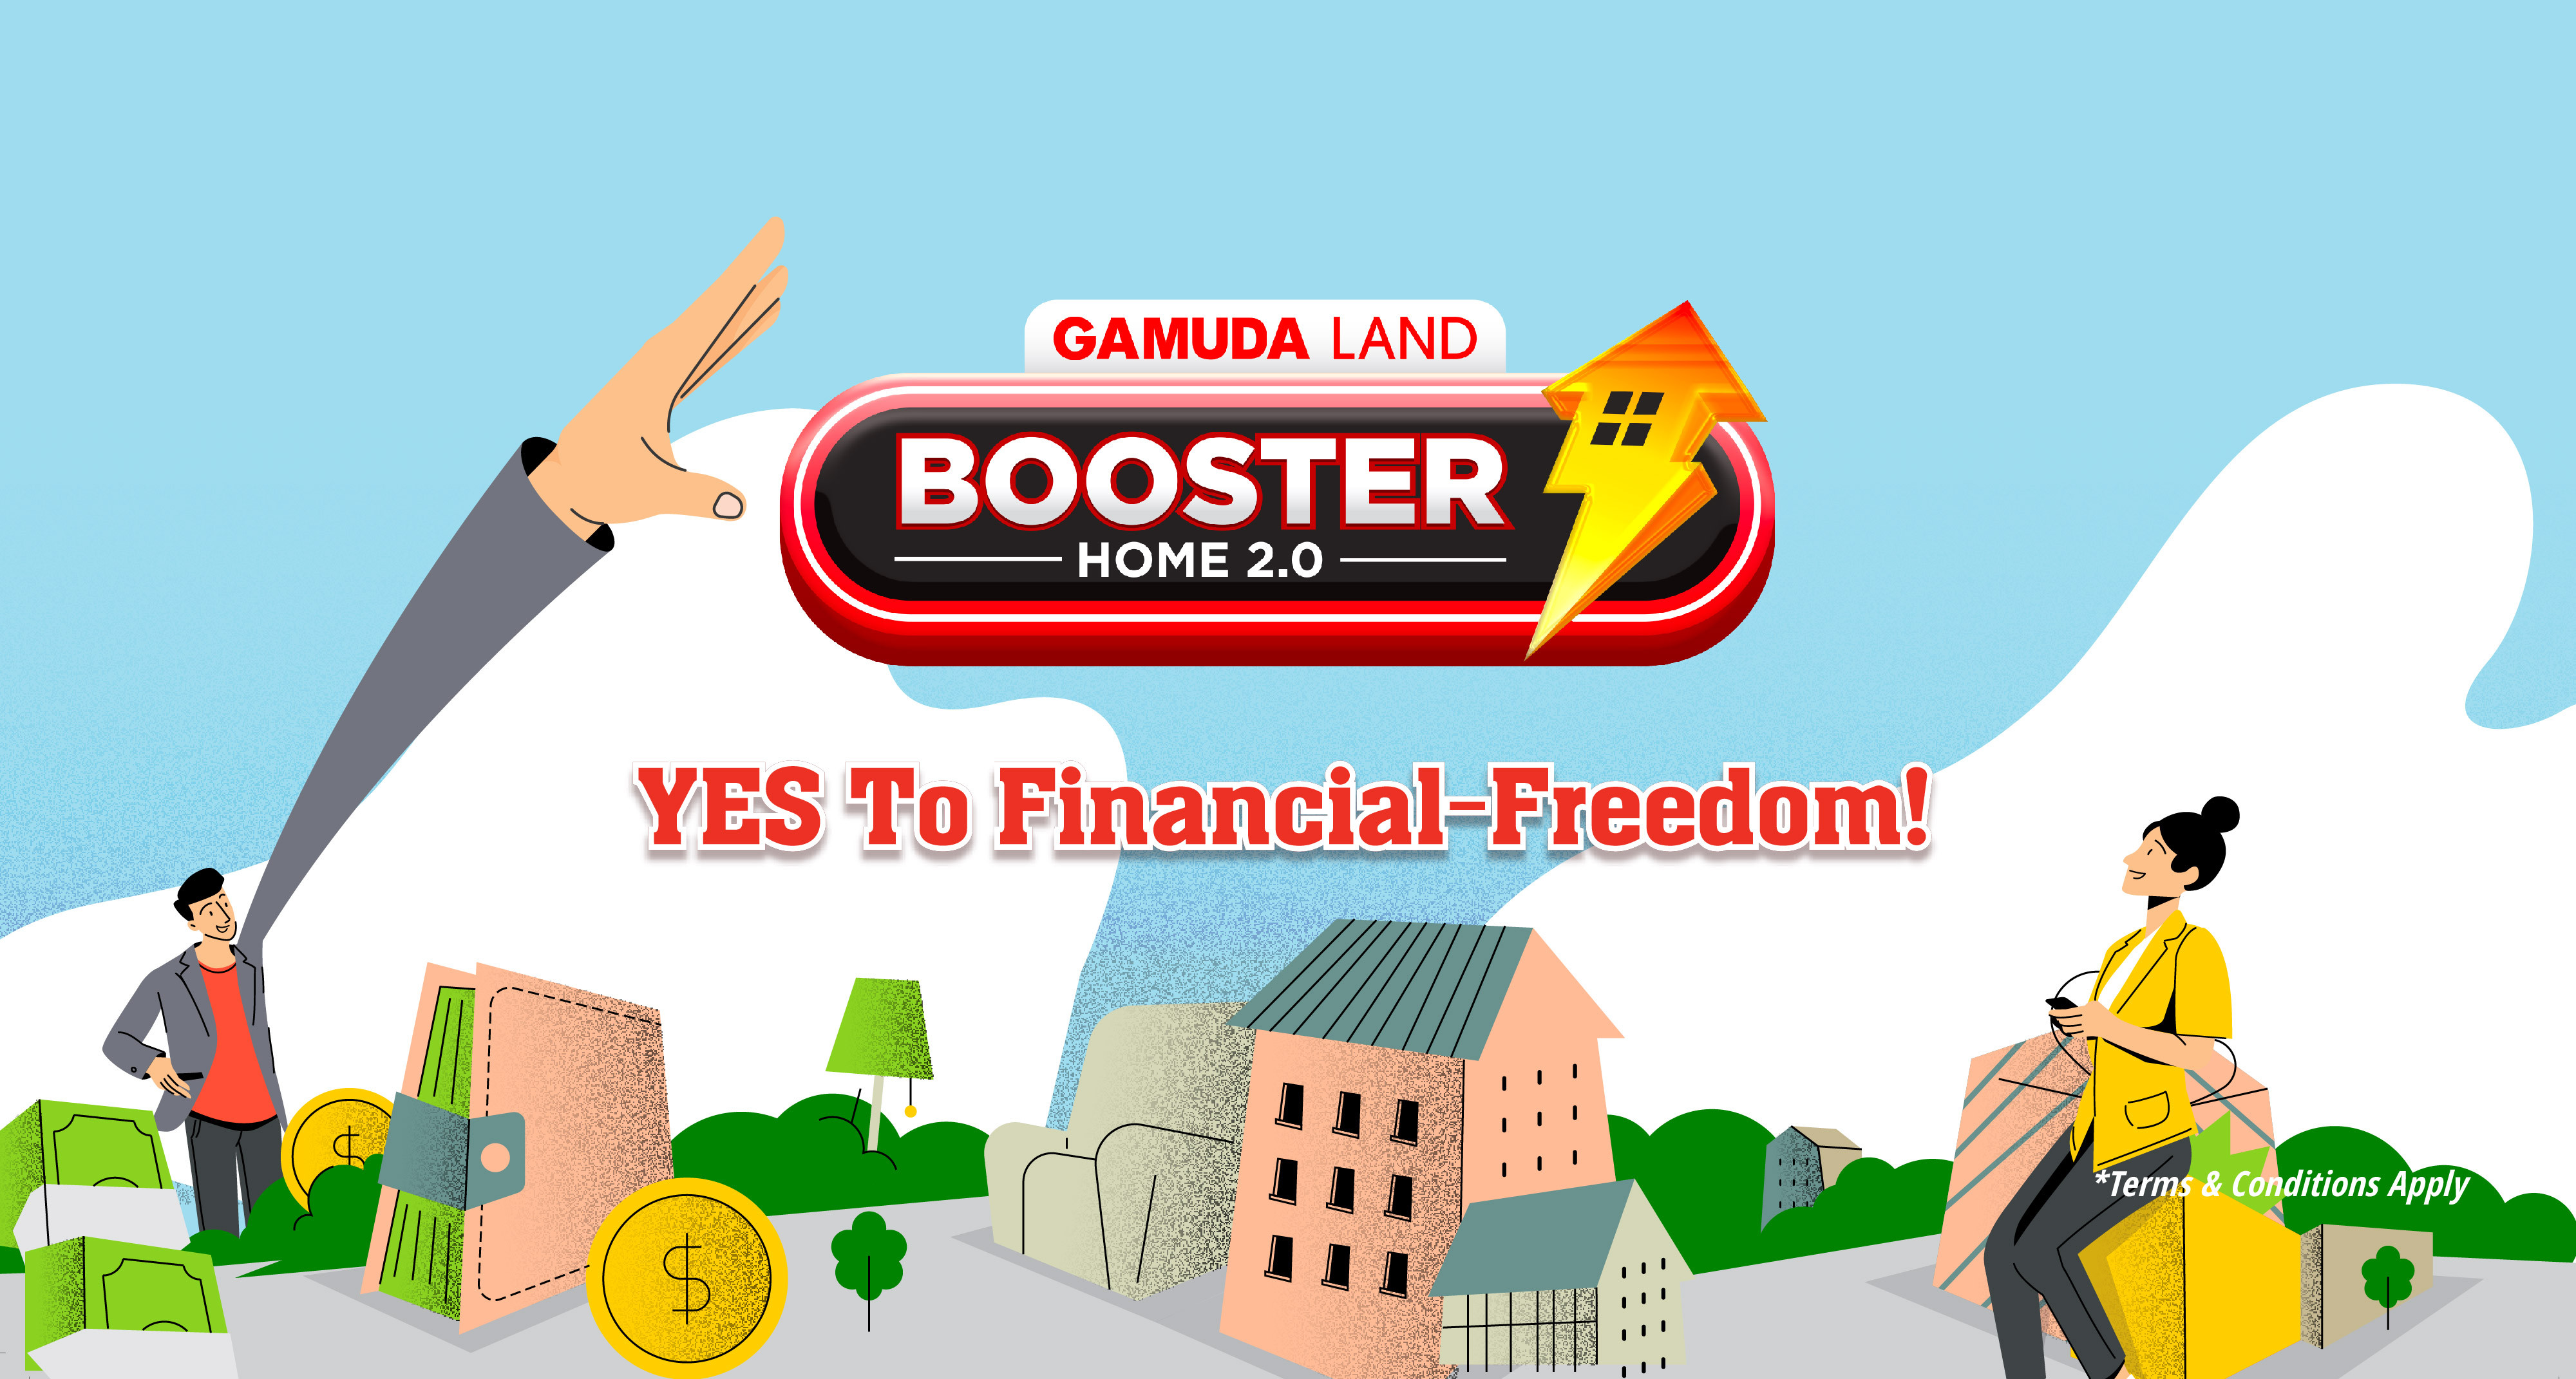 GL Booster Home 2021